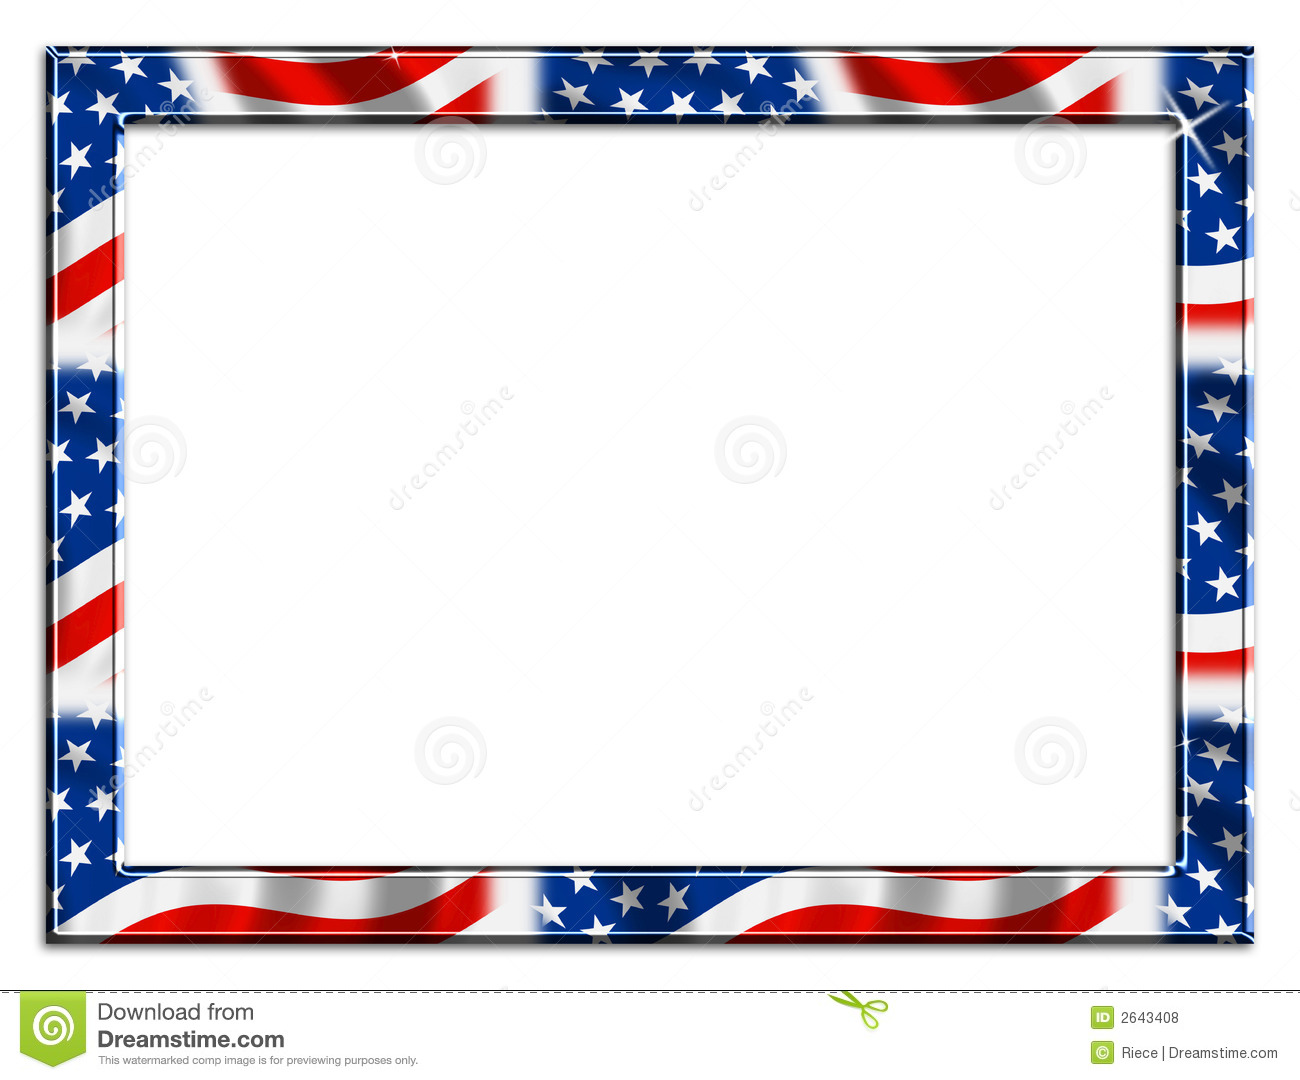 Patriotic Border Royalty Free Stock Image - Image: 25112866